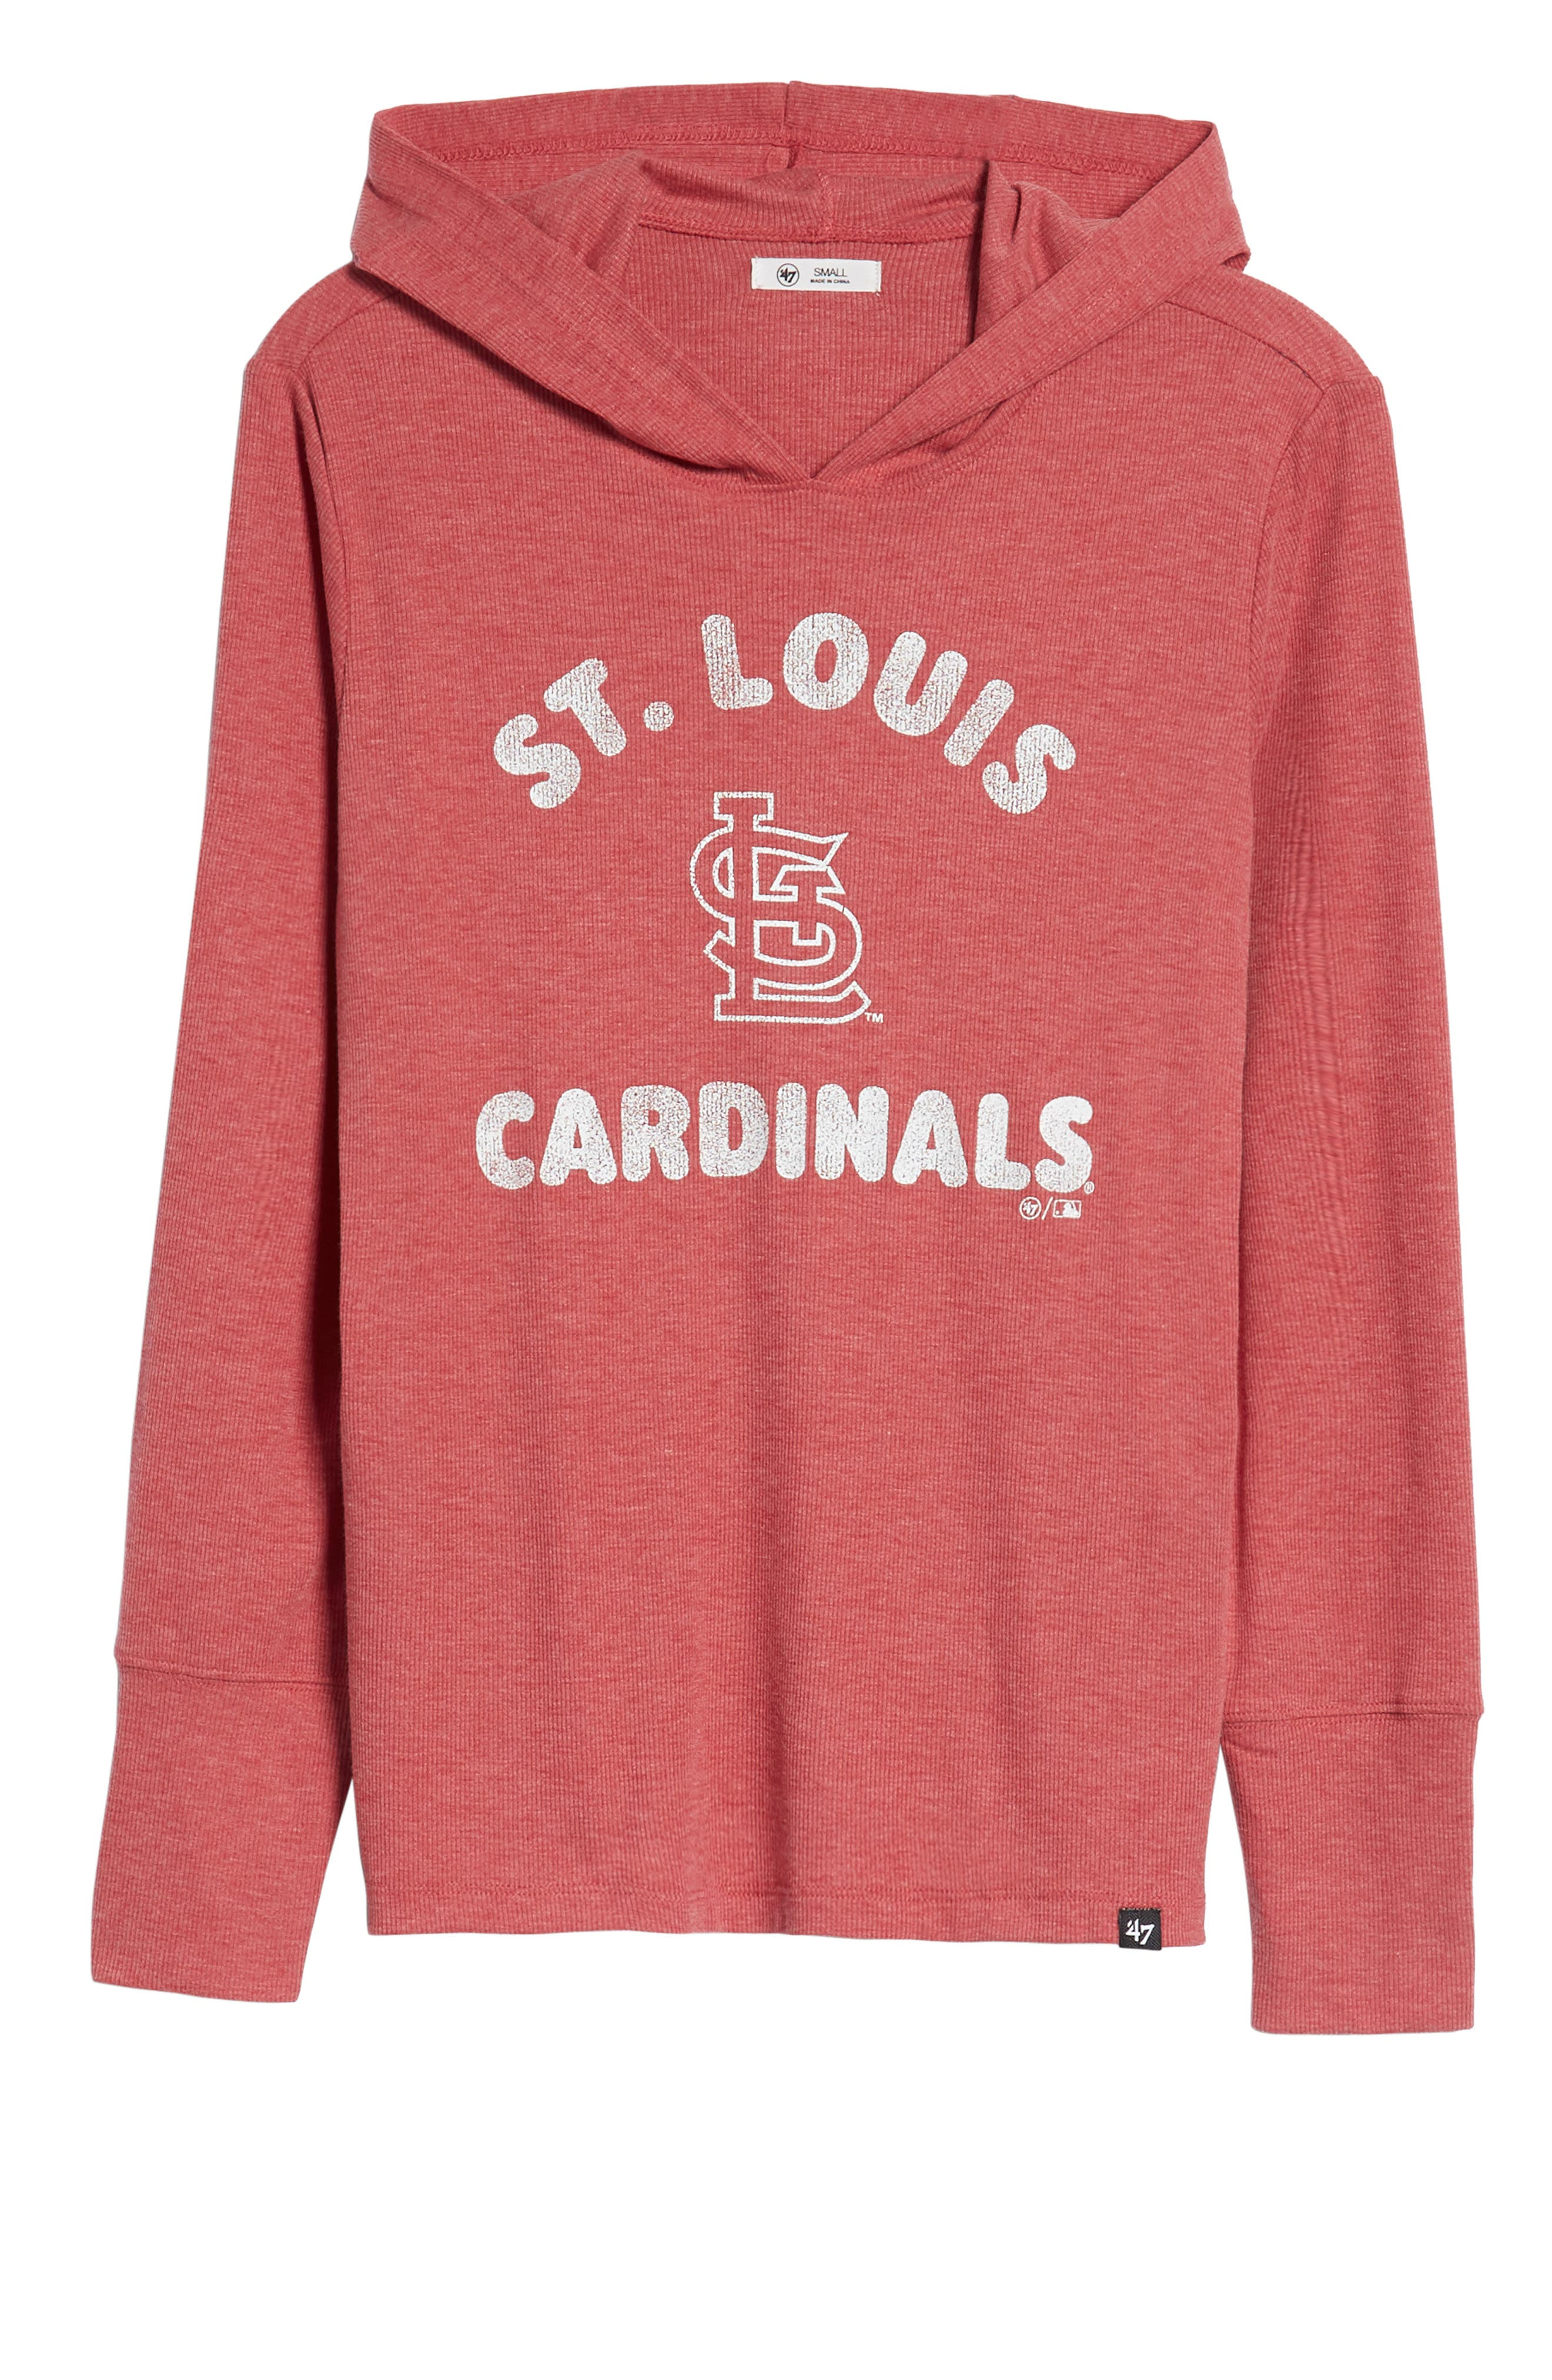 Campbell St. Louis Cardinals Rib Knit Hooded Top,                             Alternate thumbnail 7, color,                             600